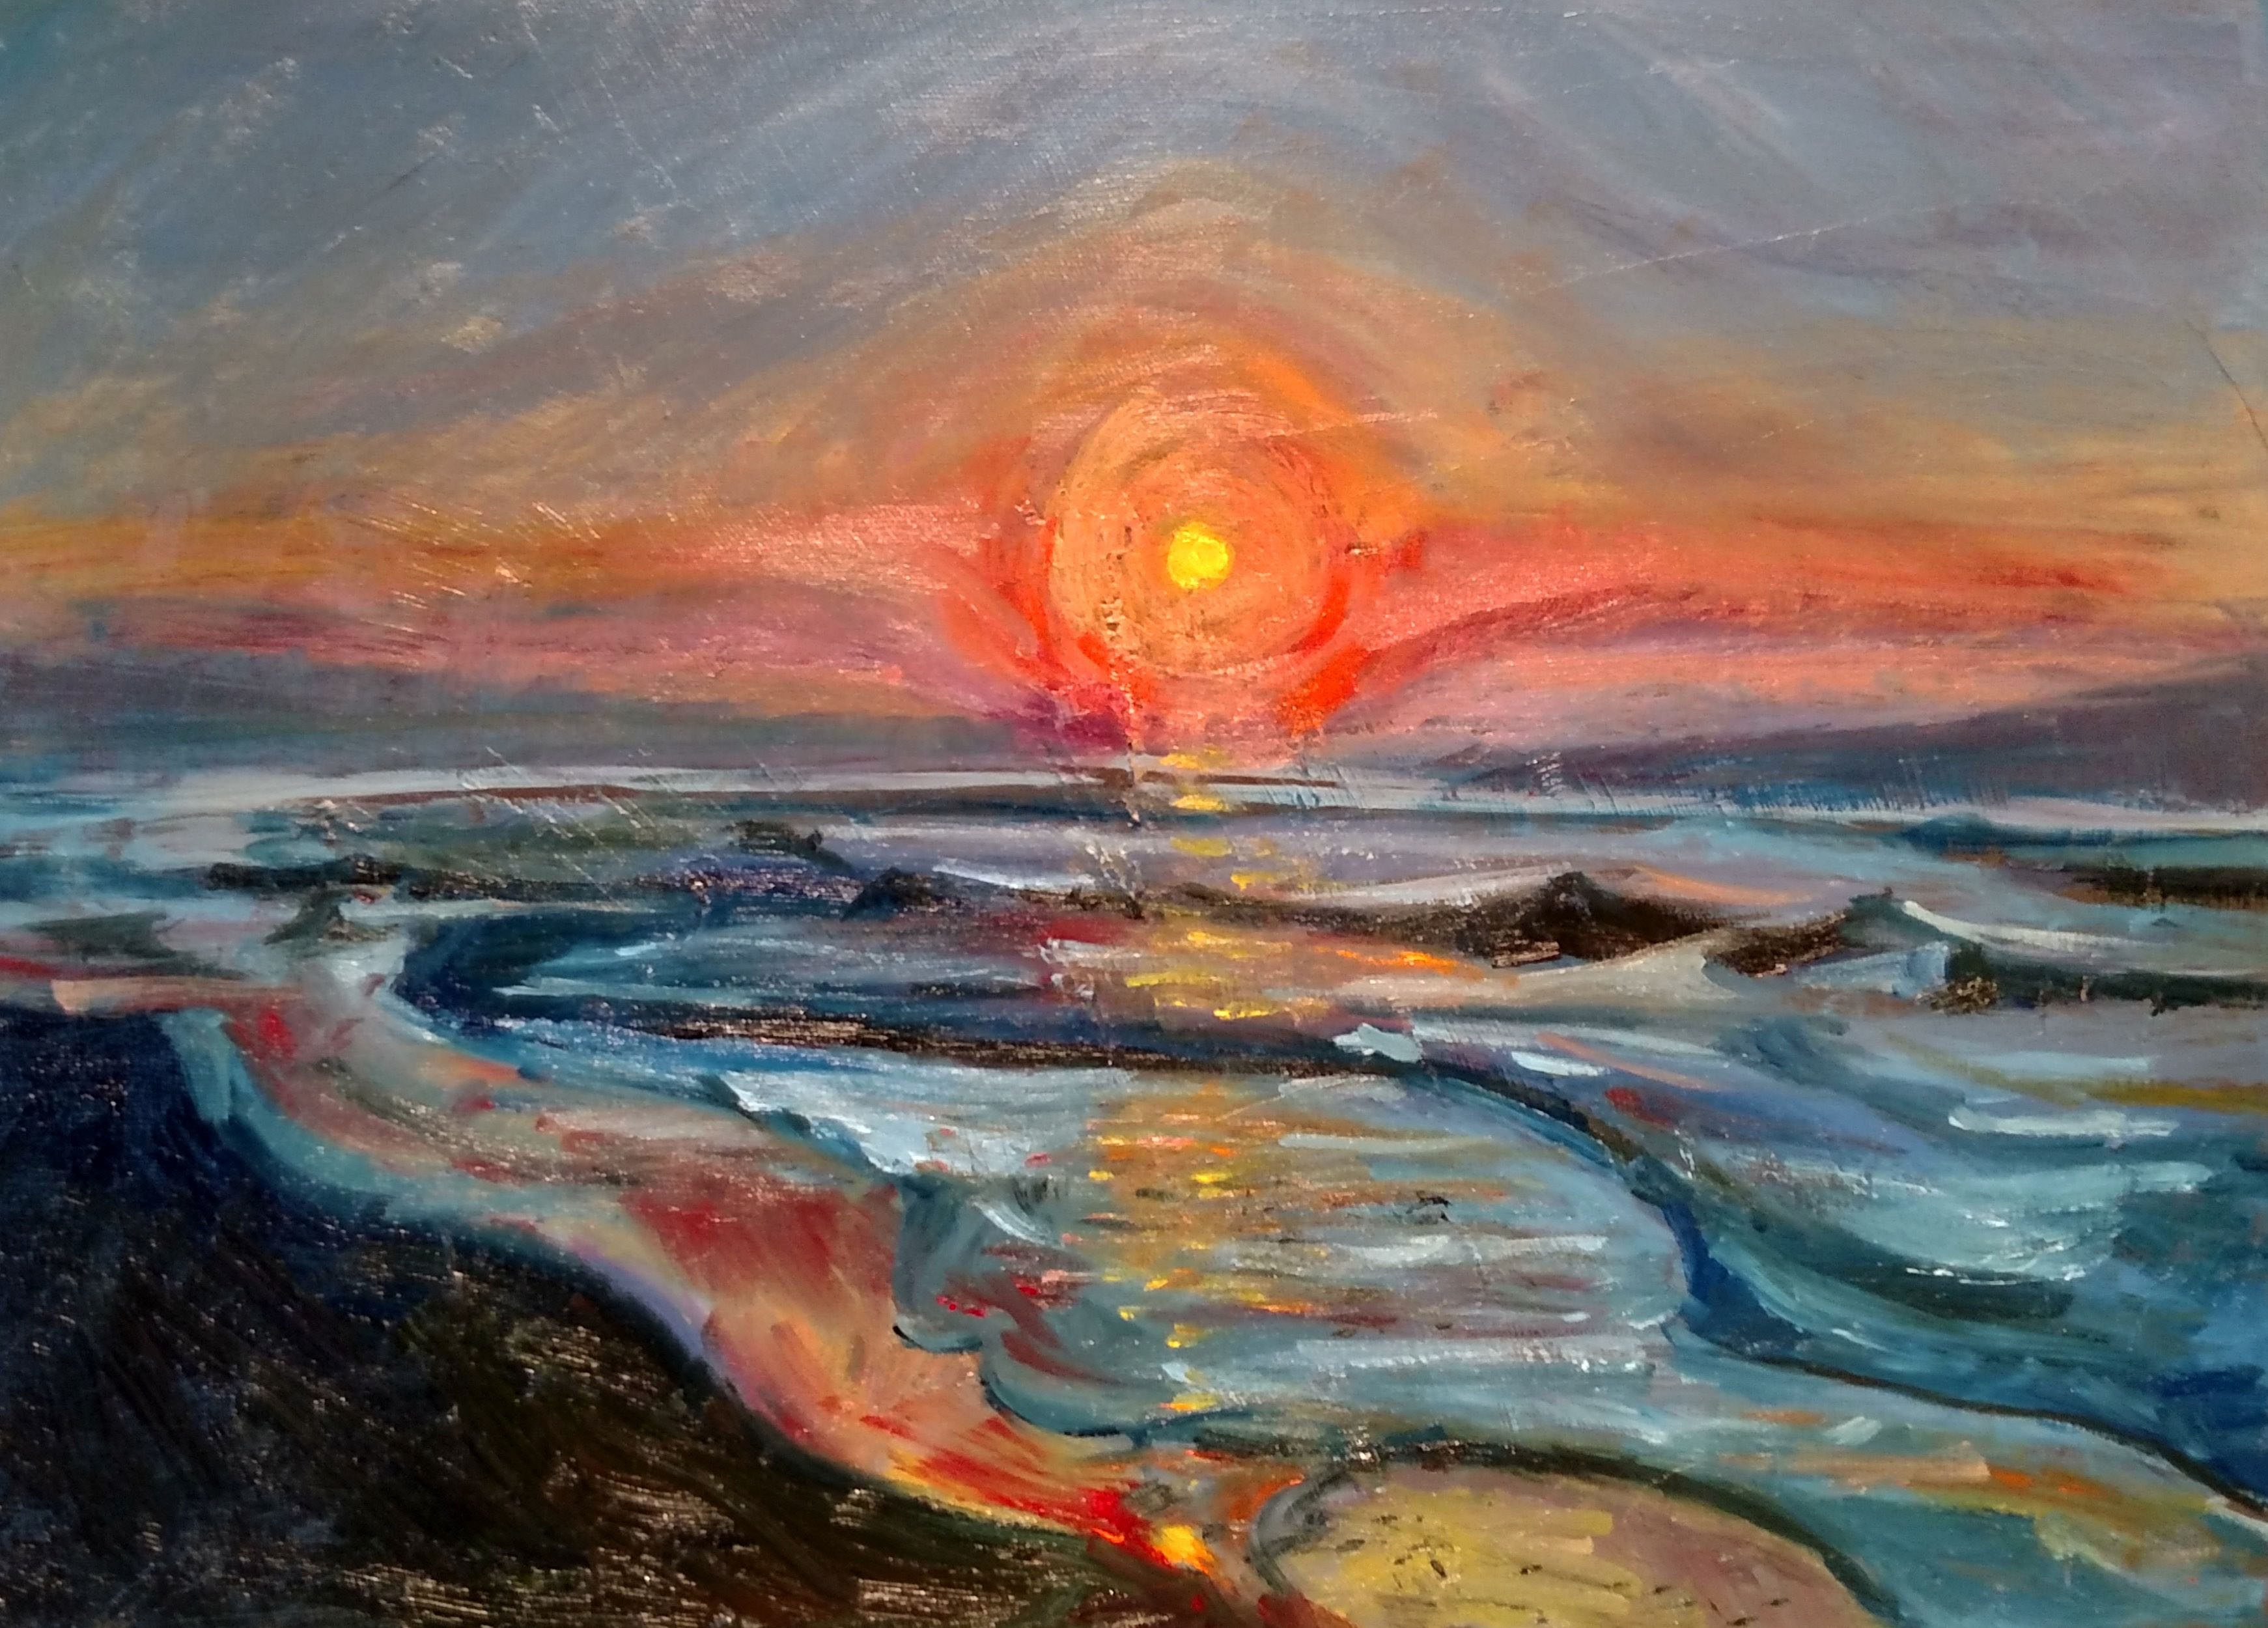 A new dawn 16 x 20 Oil on stretched canv